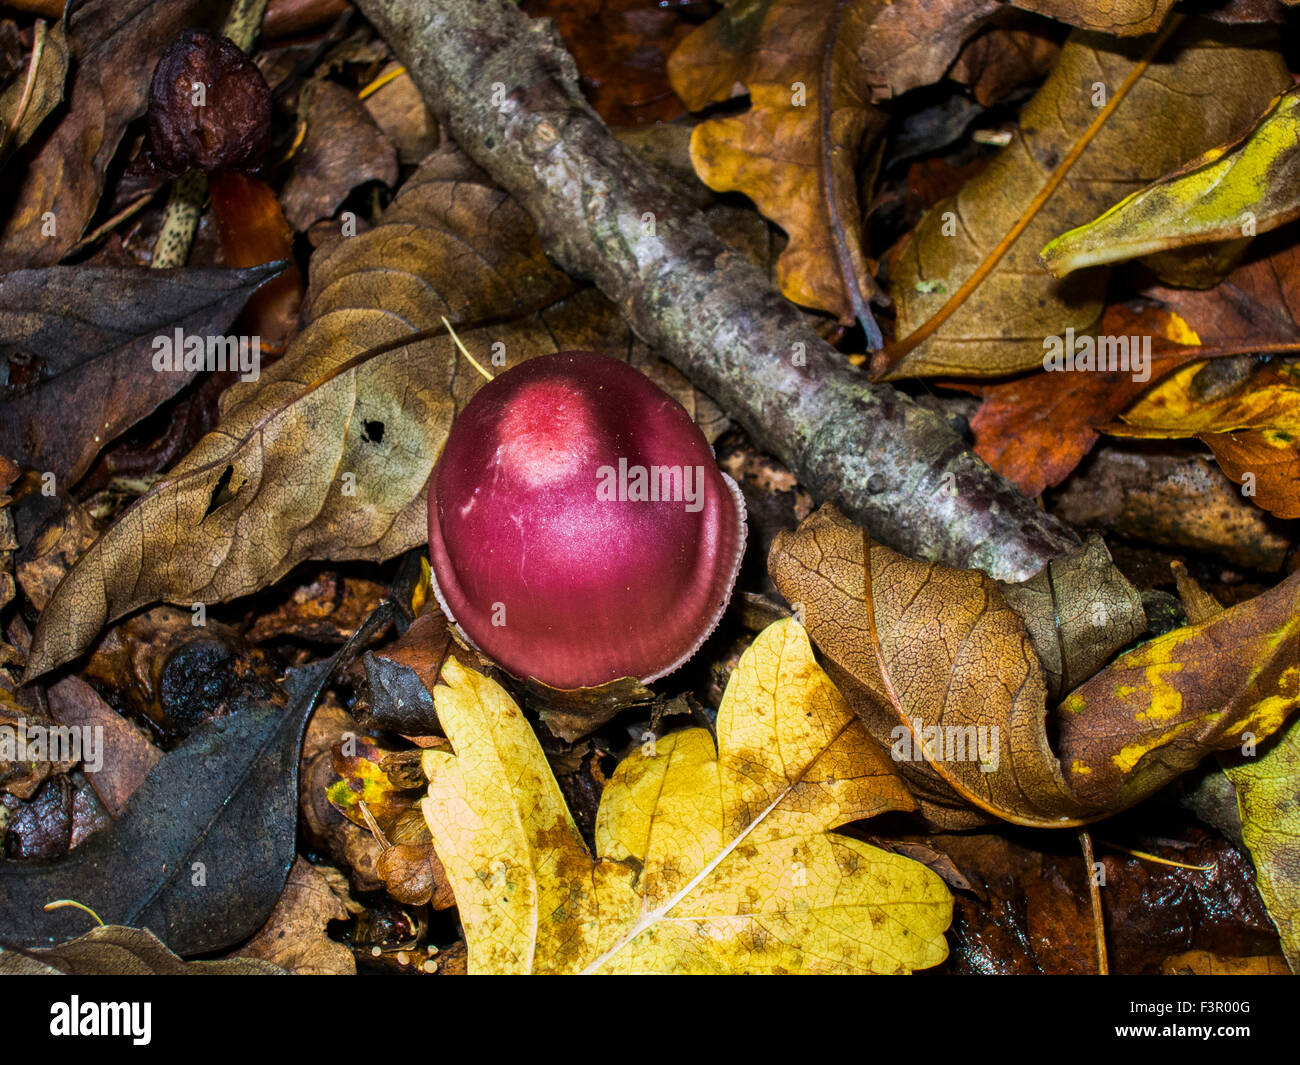 Fungus grown in Briton in damp cold forest - Stock Image